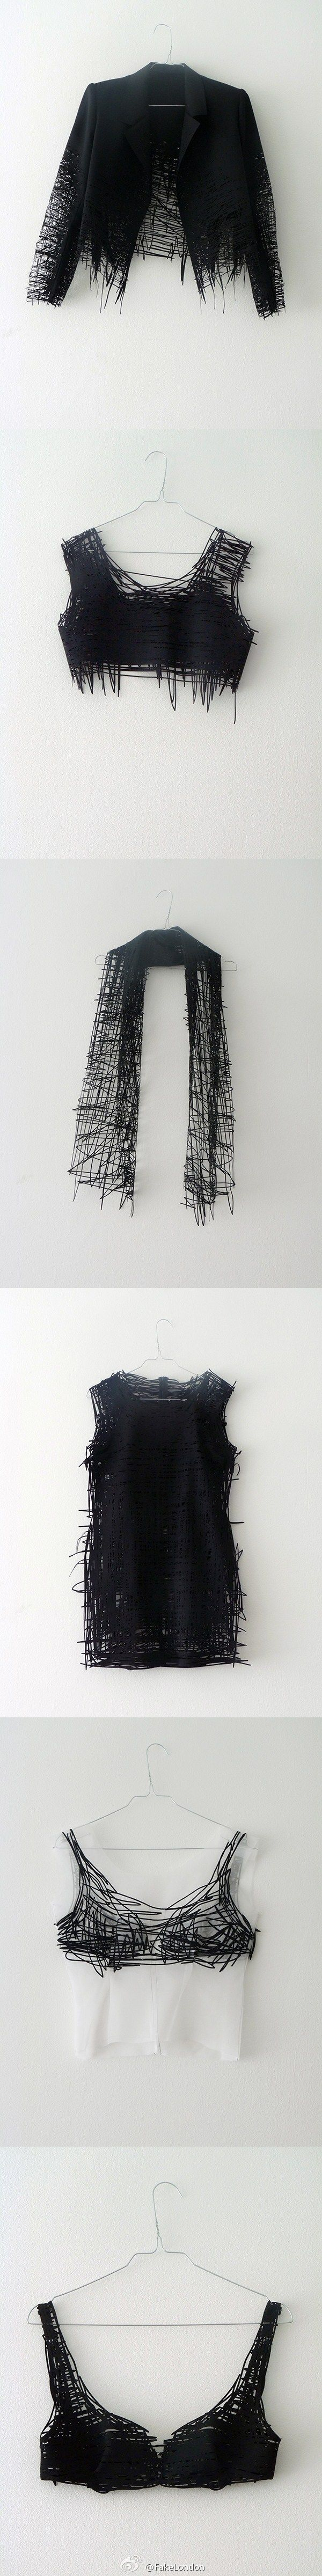 Designer Elvira 't Hart - a recent fashion graduate who translates 2D sketches to 3D laser-cut pieces